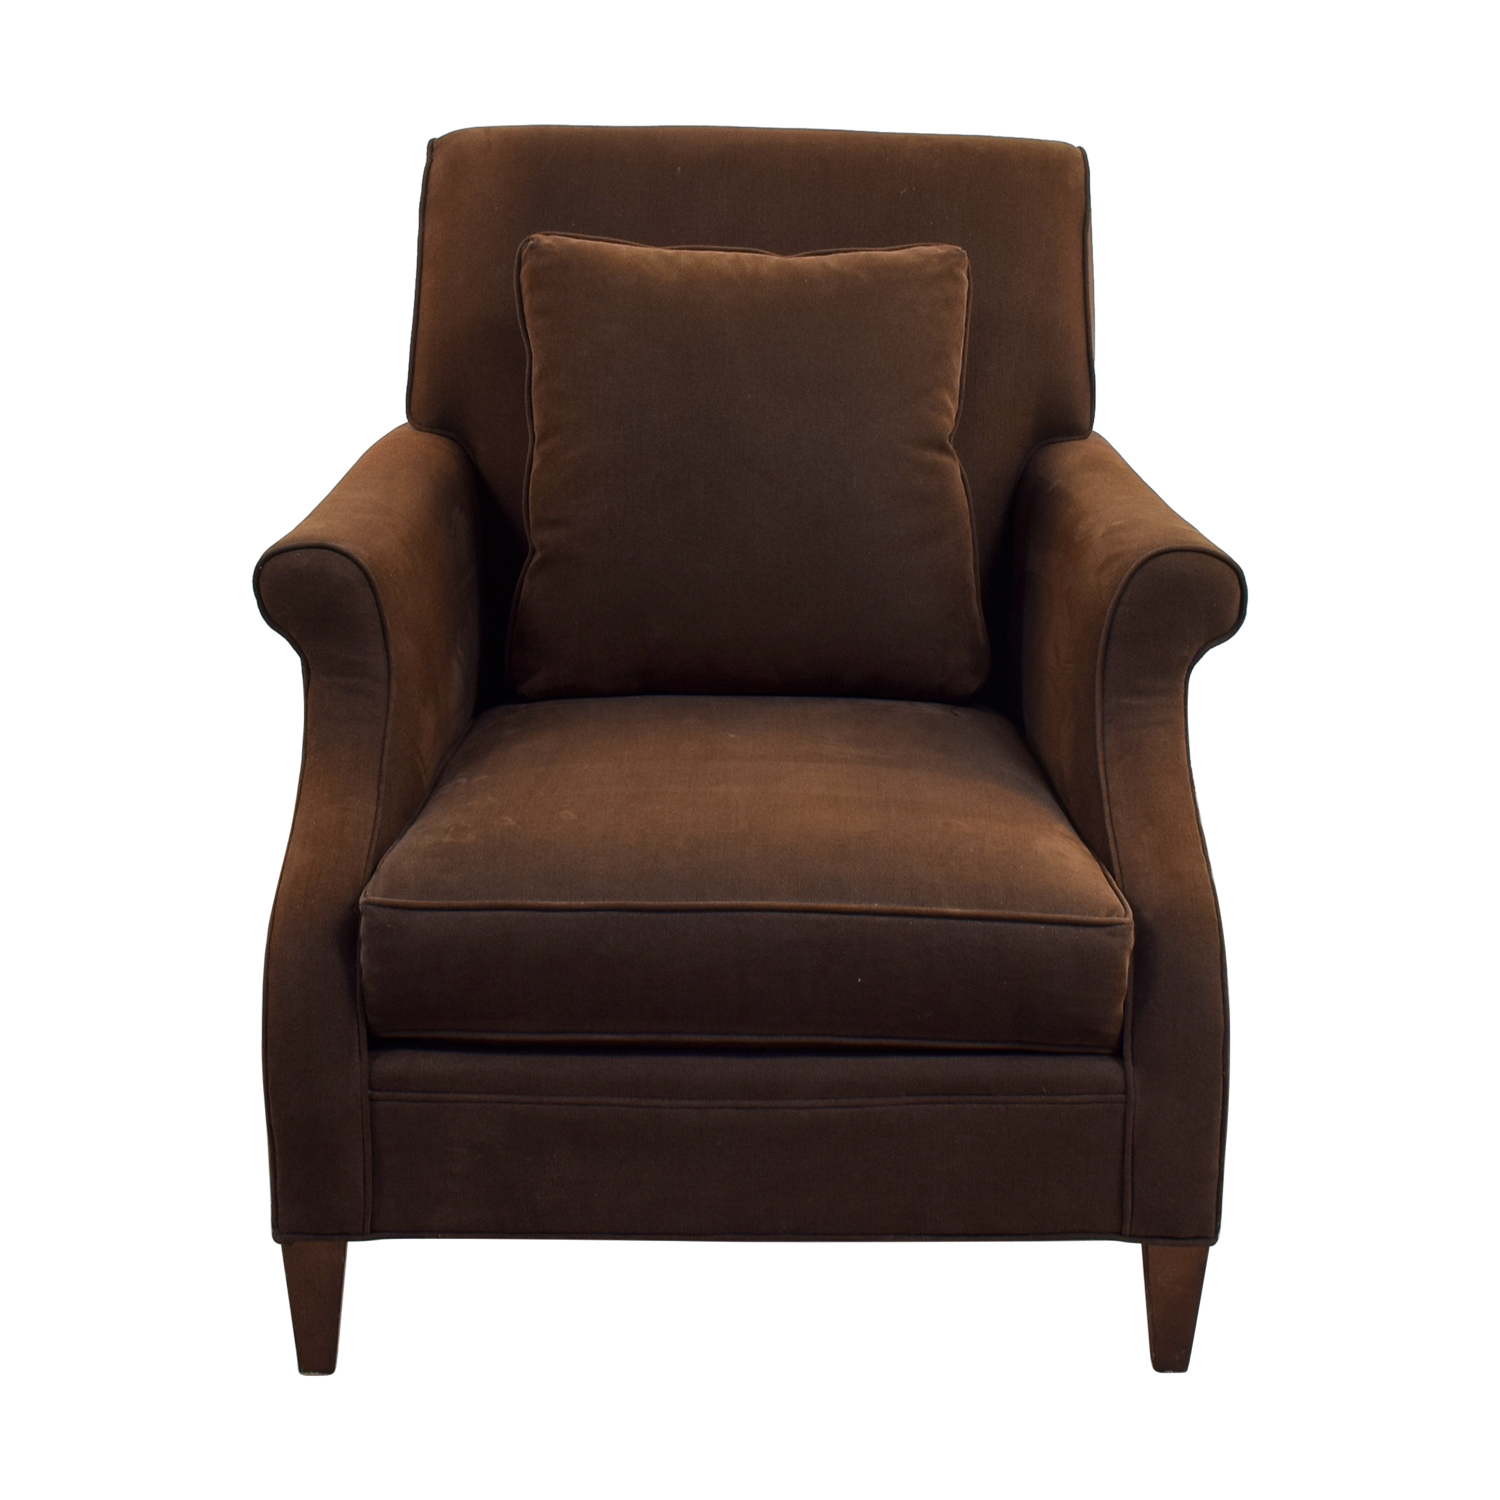 Mitchell Gold + Bob Williams Mitchell Gold + Bob Williams Deep Seated Brown Armchair nyc